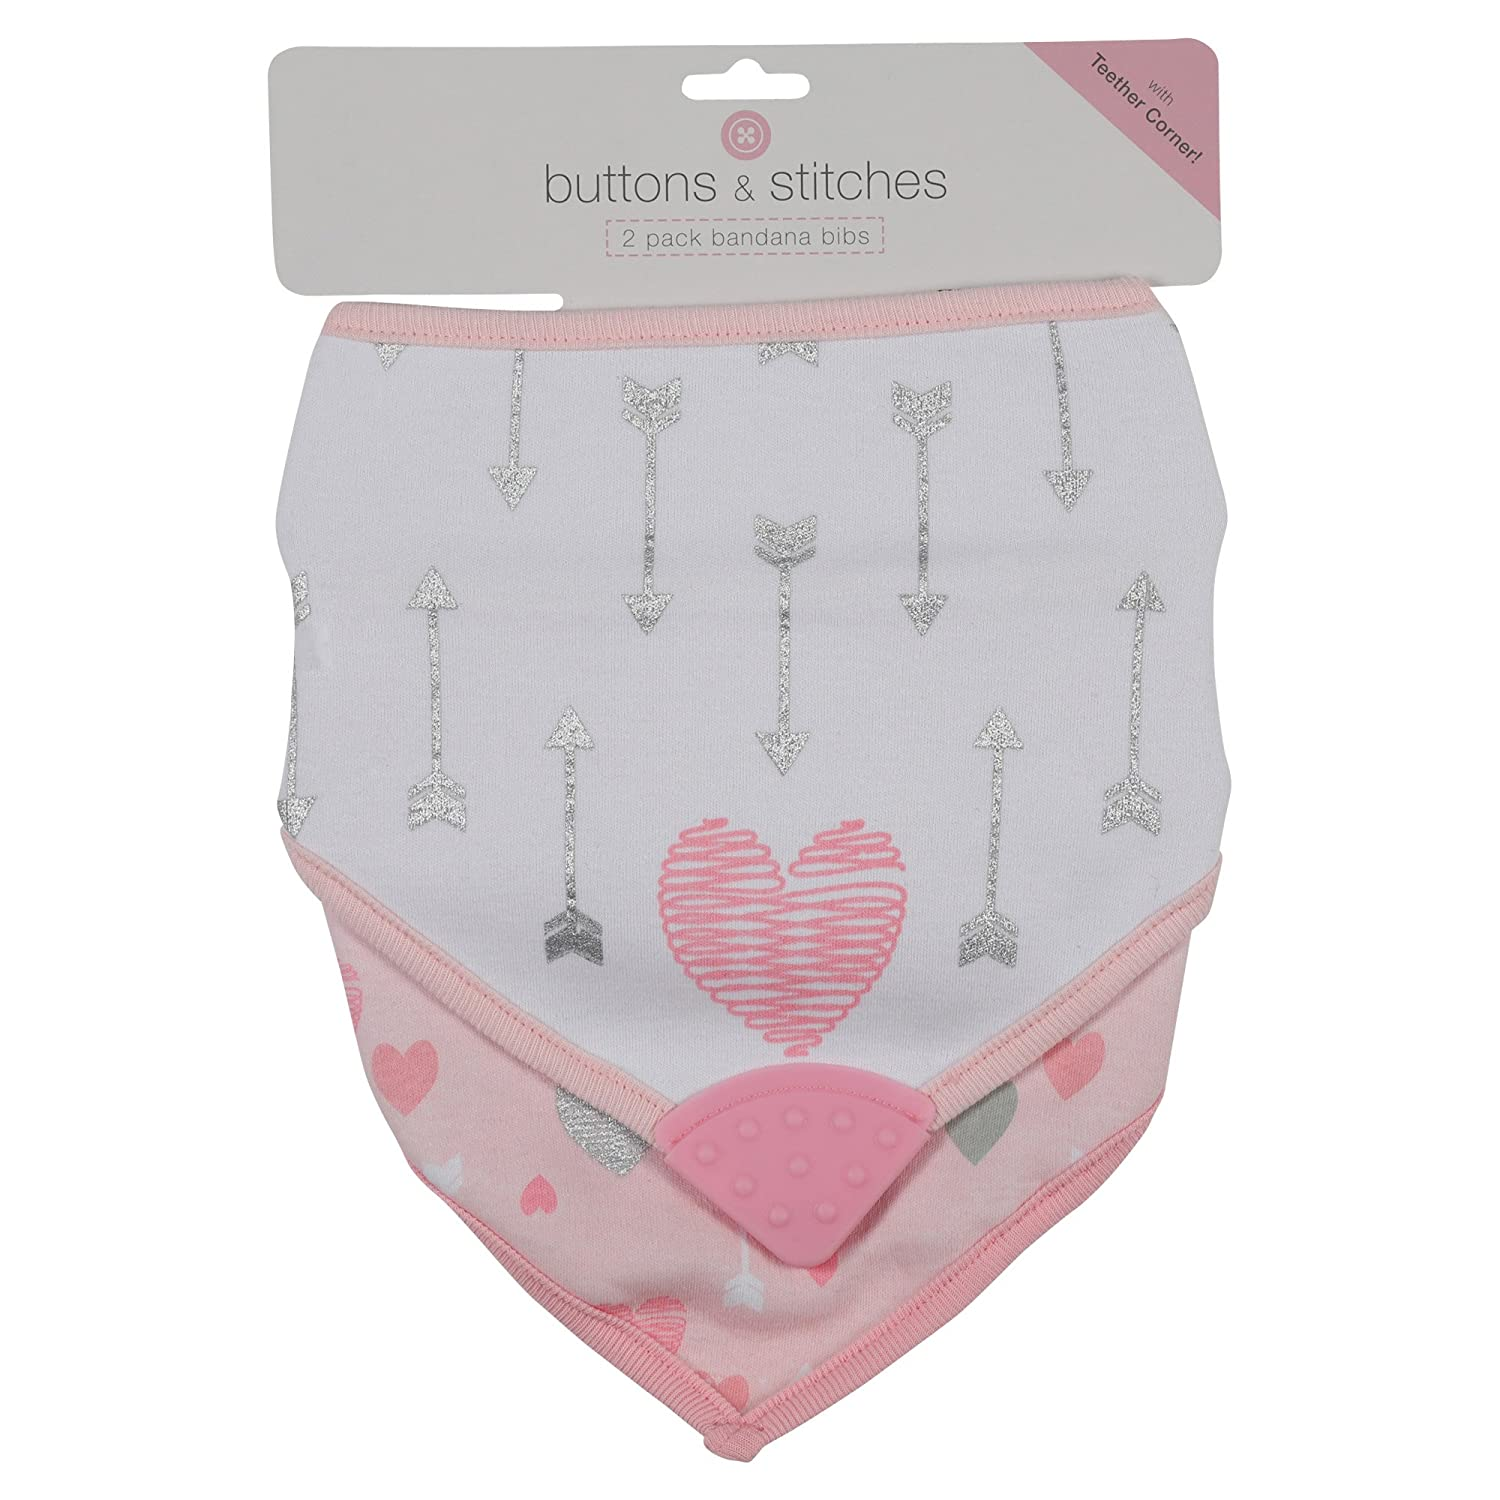 Buttons and Stitches Girls Bandana Bib, Heart and Arrow Print, Pink, 2 Count